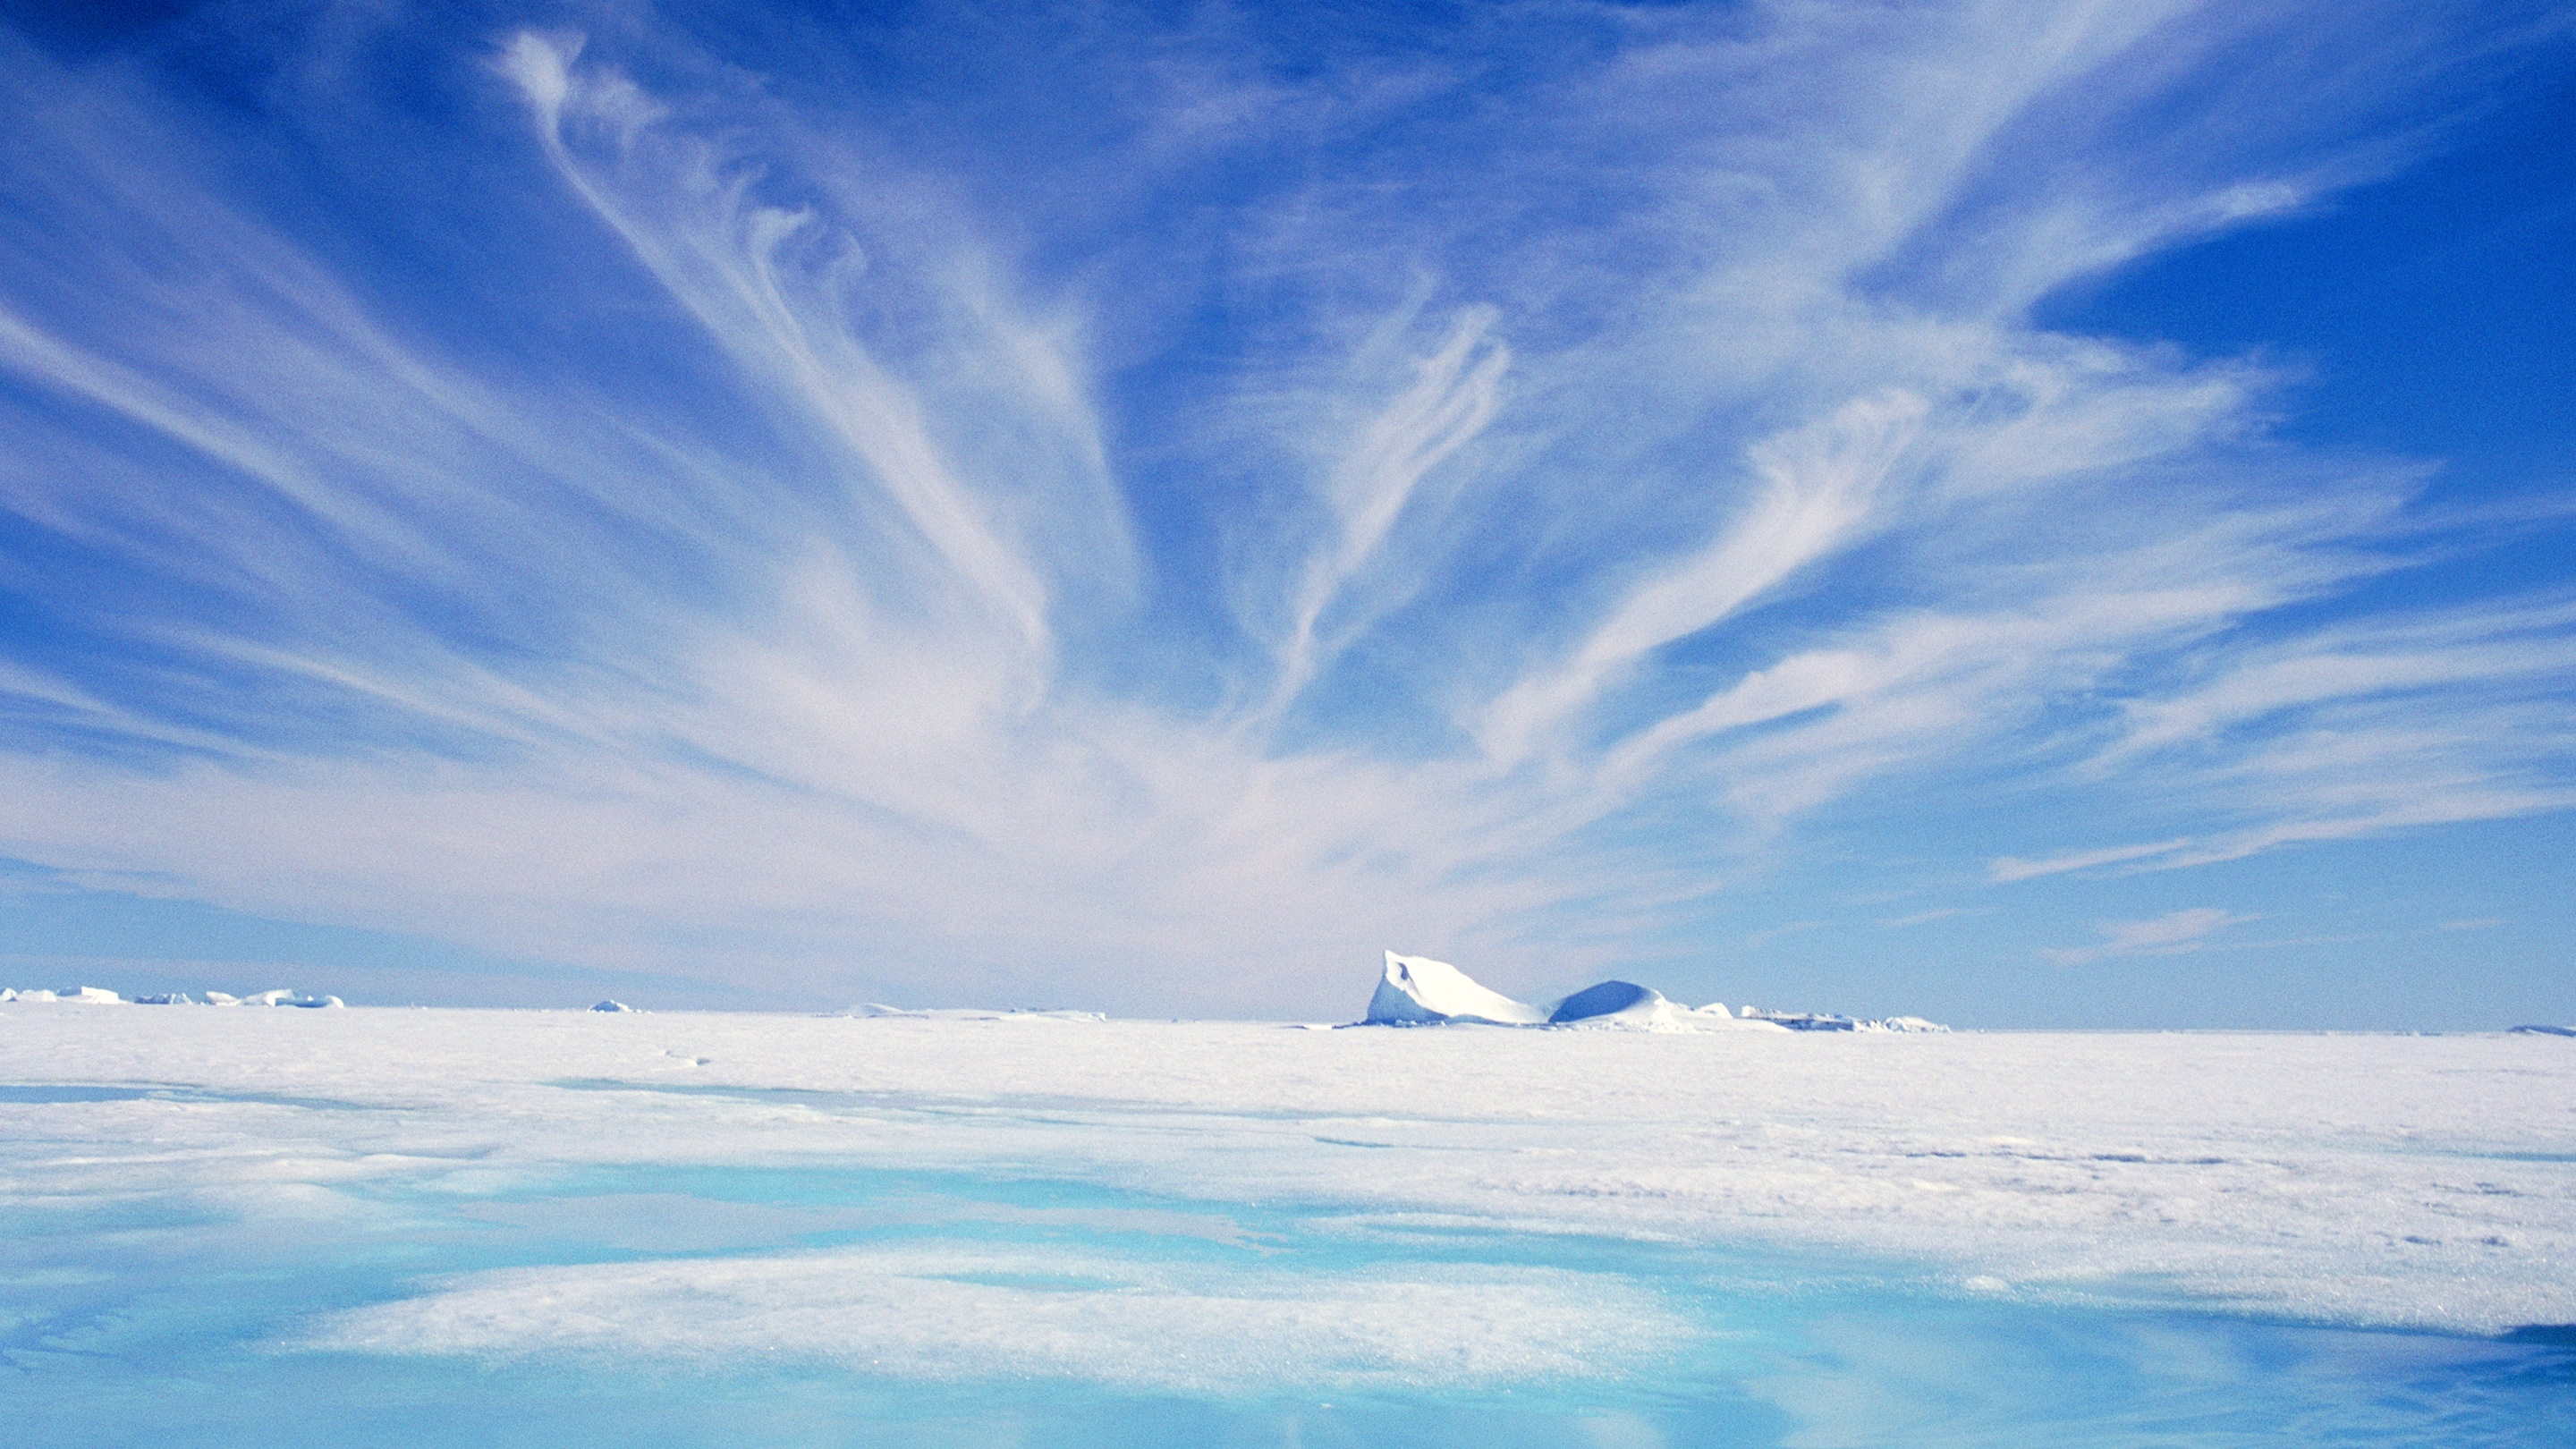 Photograph showing cirrus clouds in a blue sky above an expanse of flat, snow-covered ice.